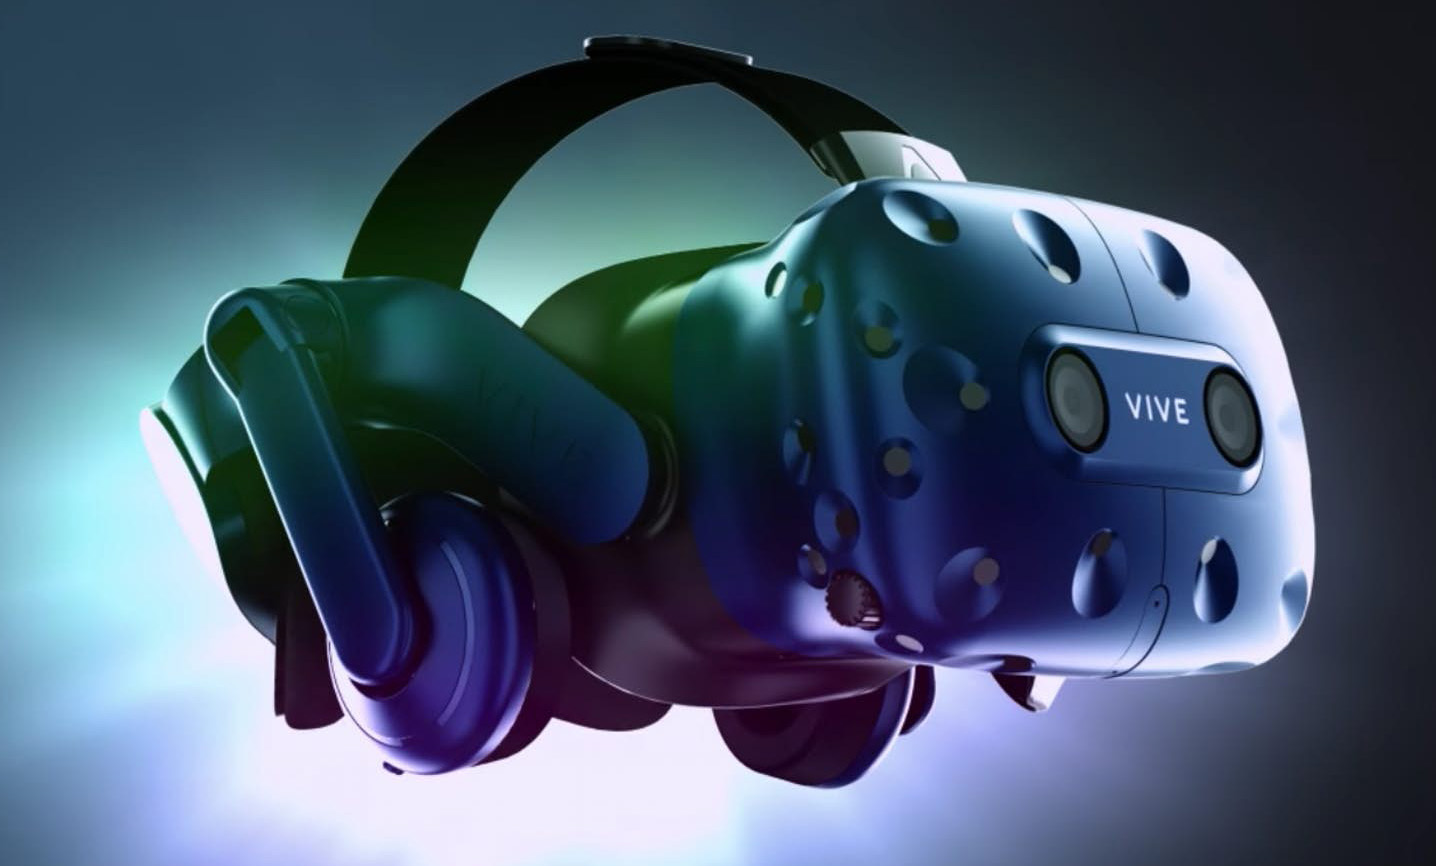 HTC unveils upgraded Vive VR headset